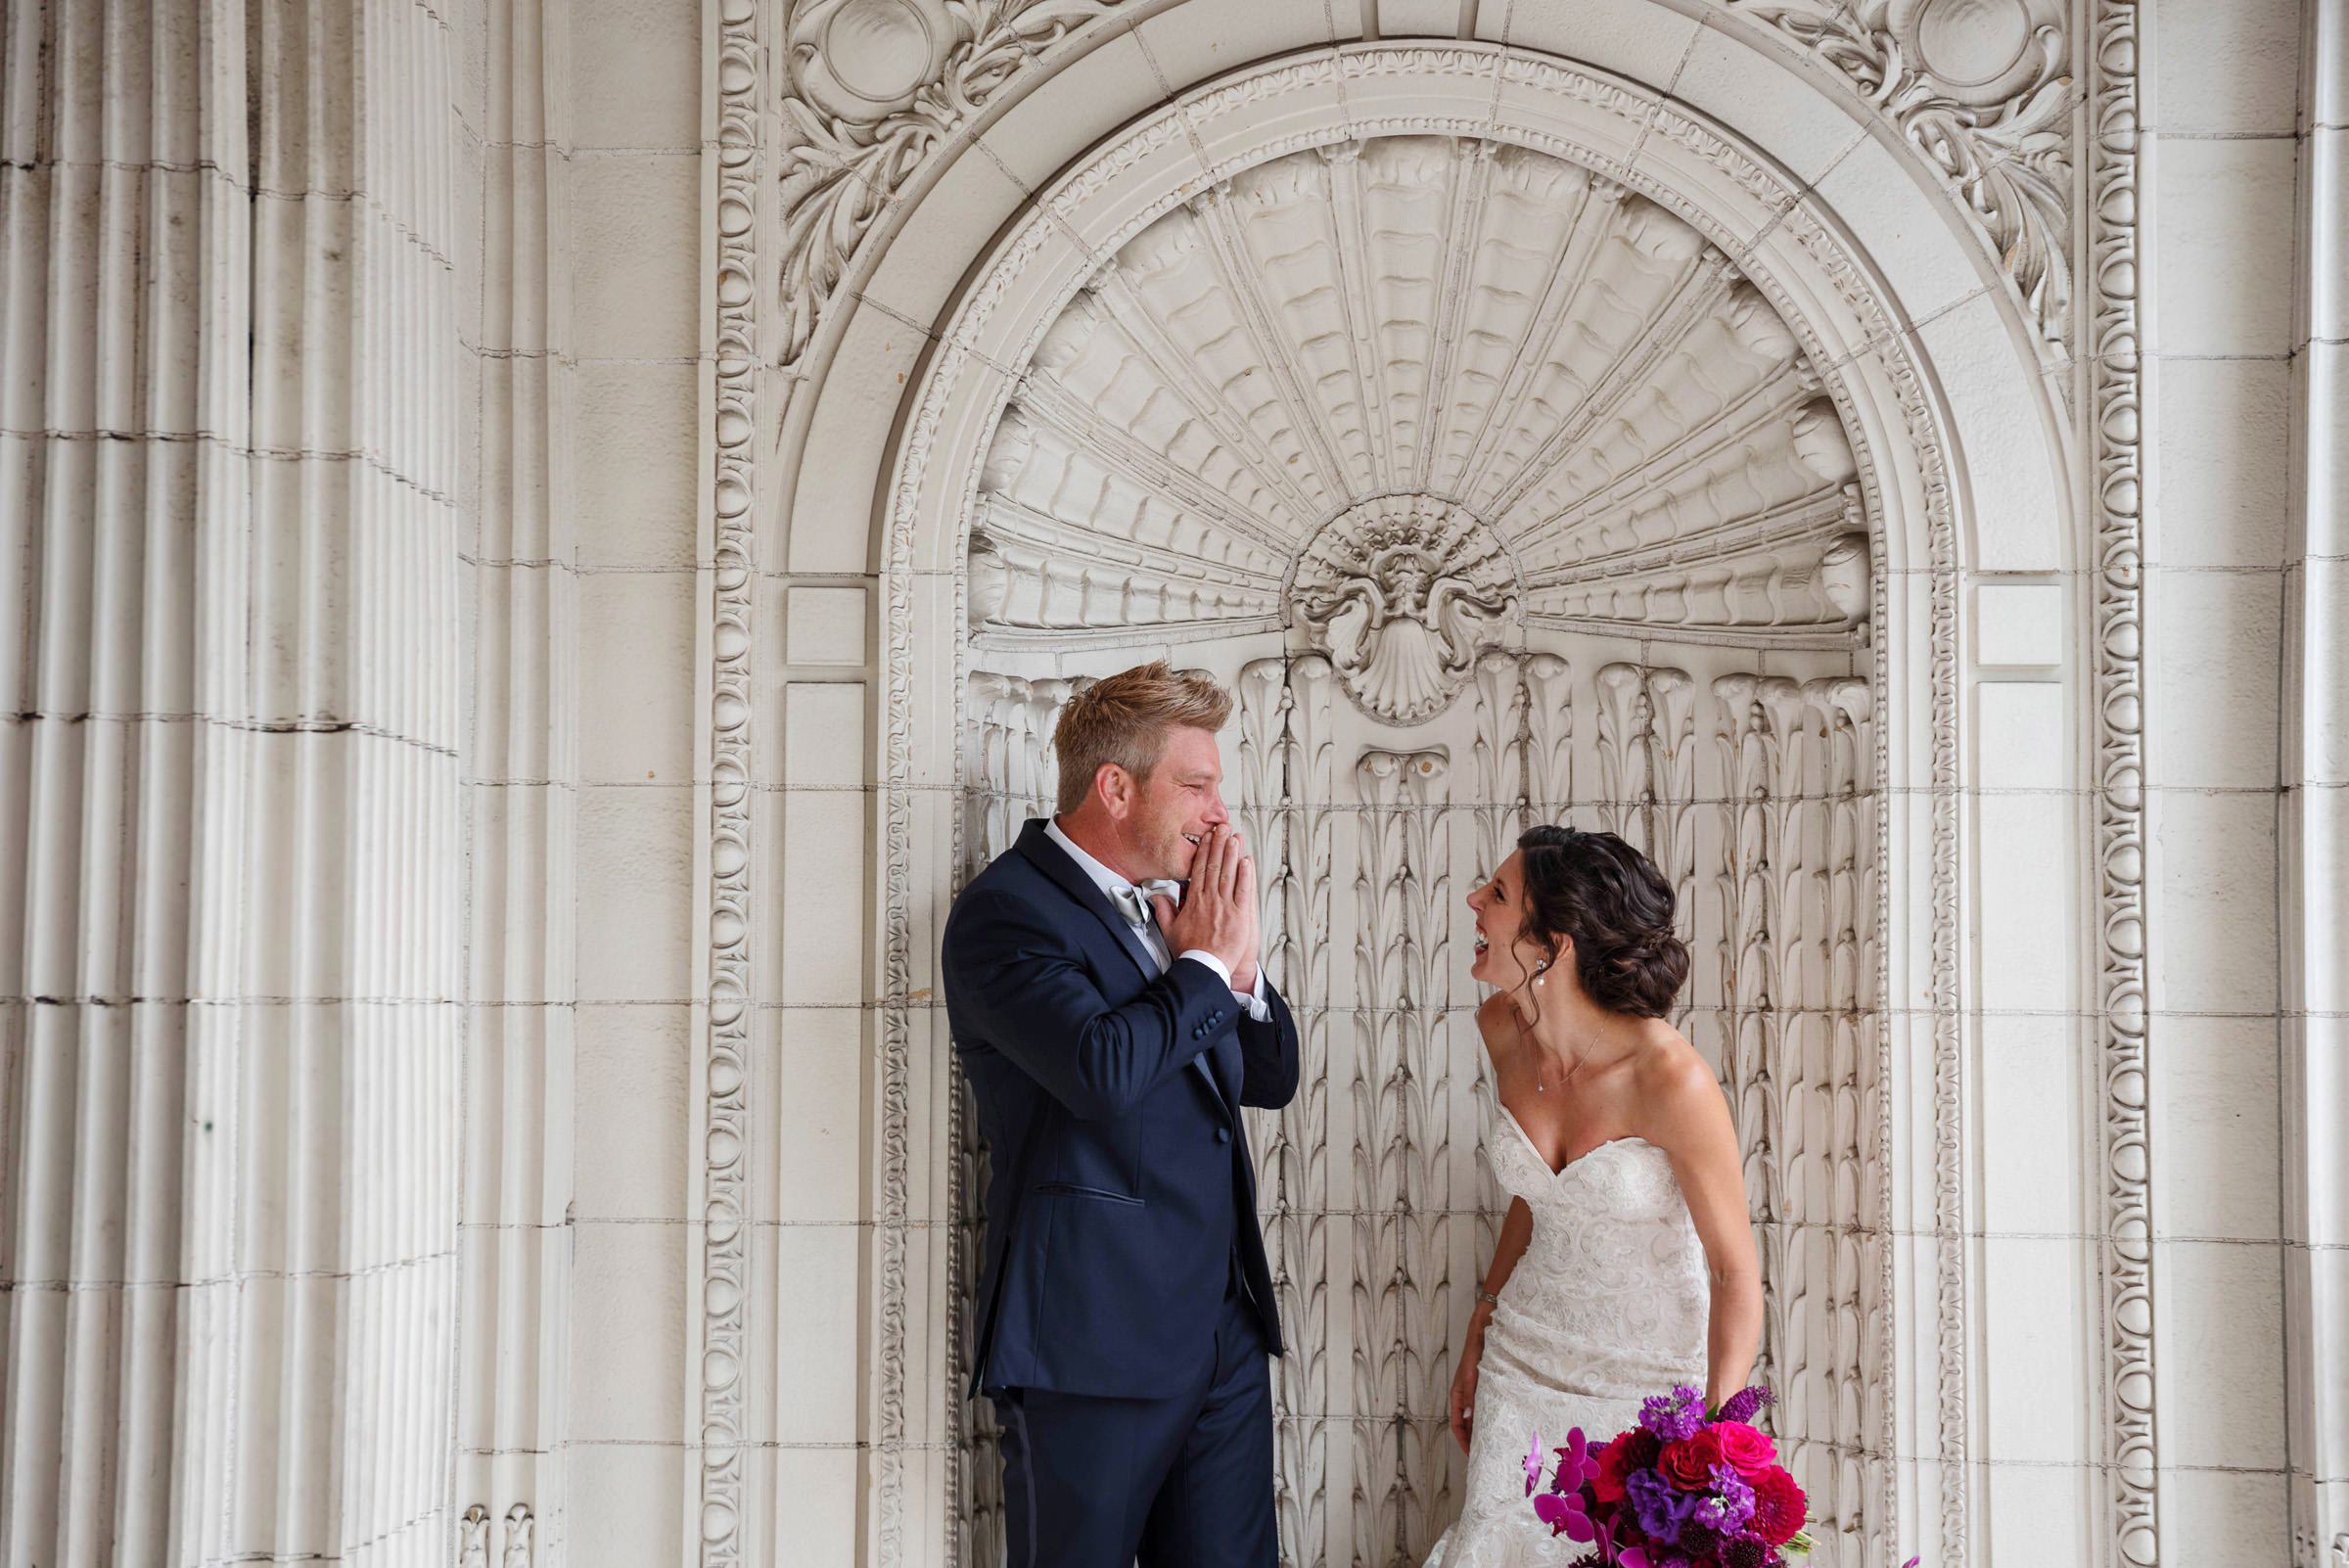 Moment of laughter in ornate alcove - photo by Barbie Hull Photography